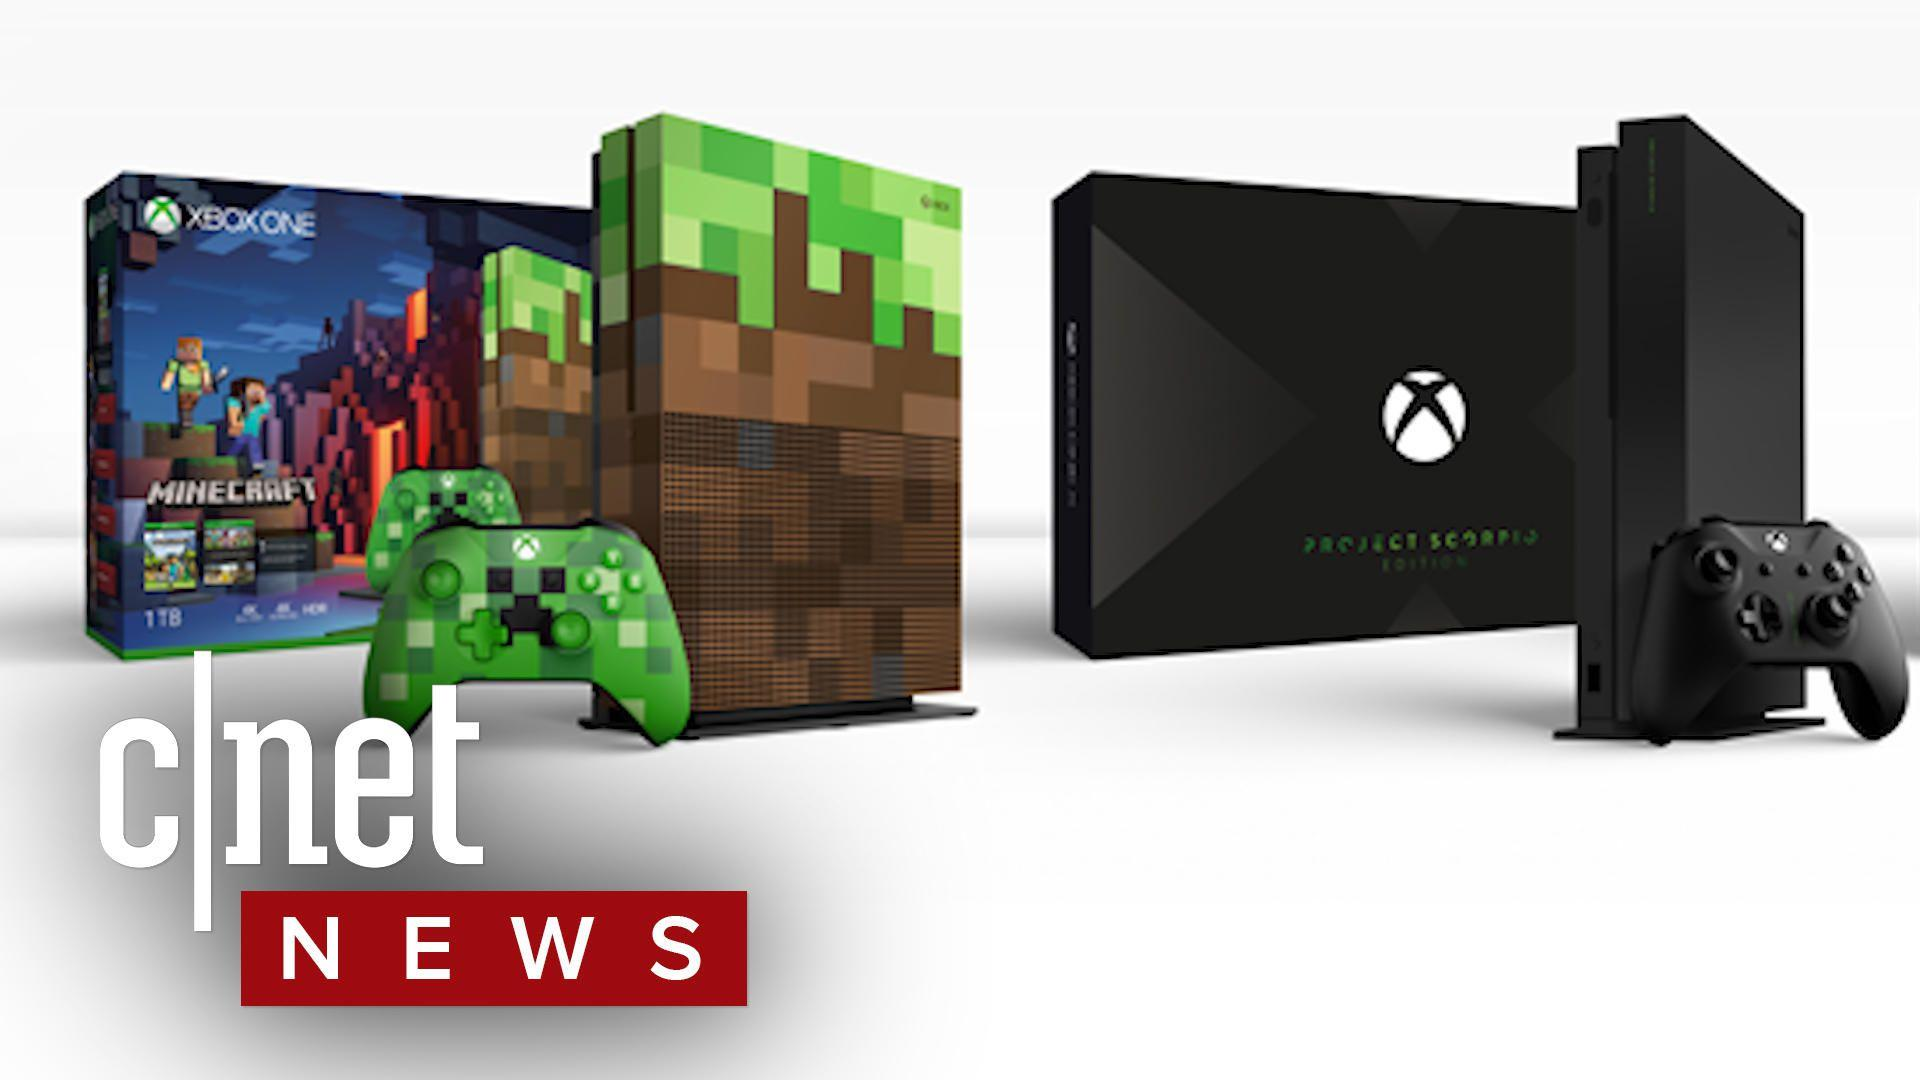 Namecheap dumps Daily Stormer, Xbox One X Preorders begin